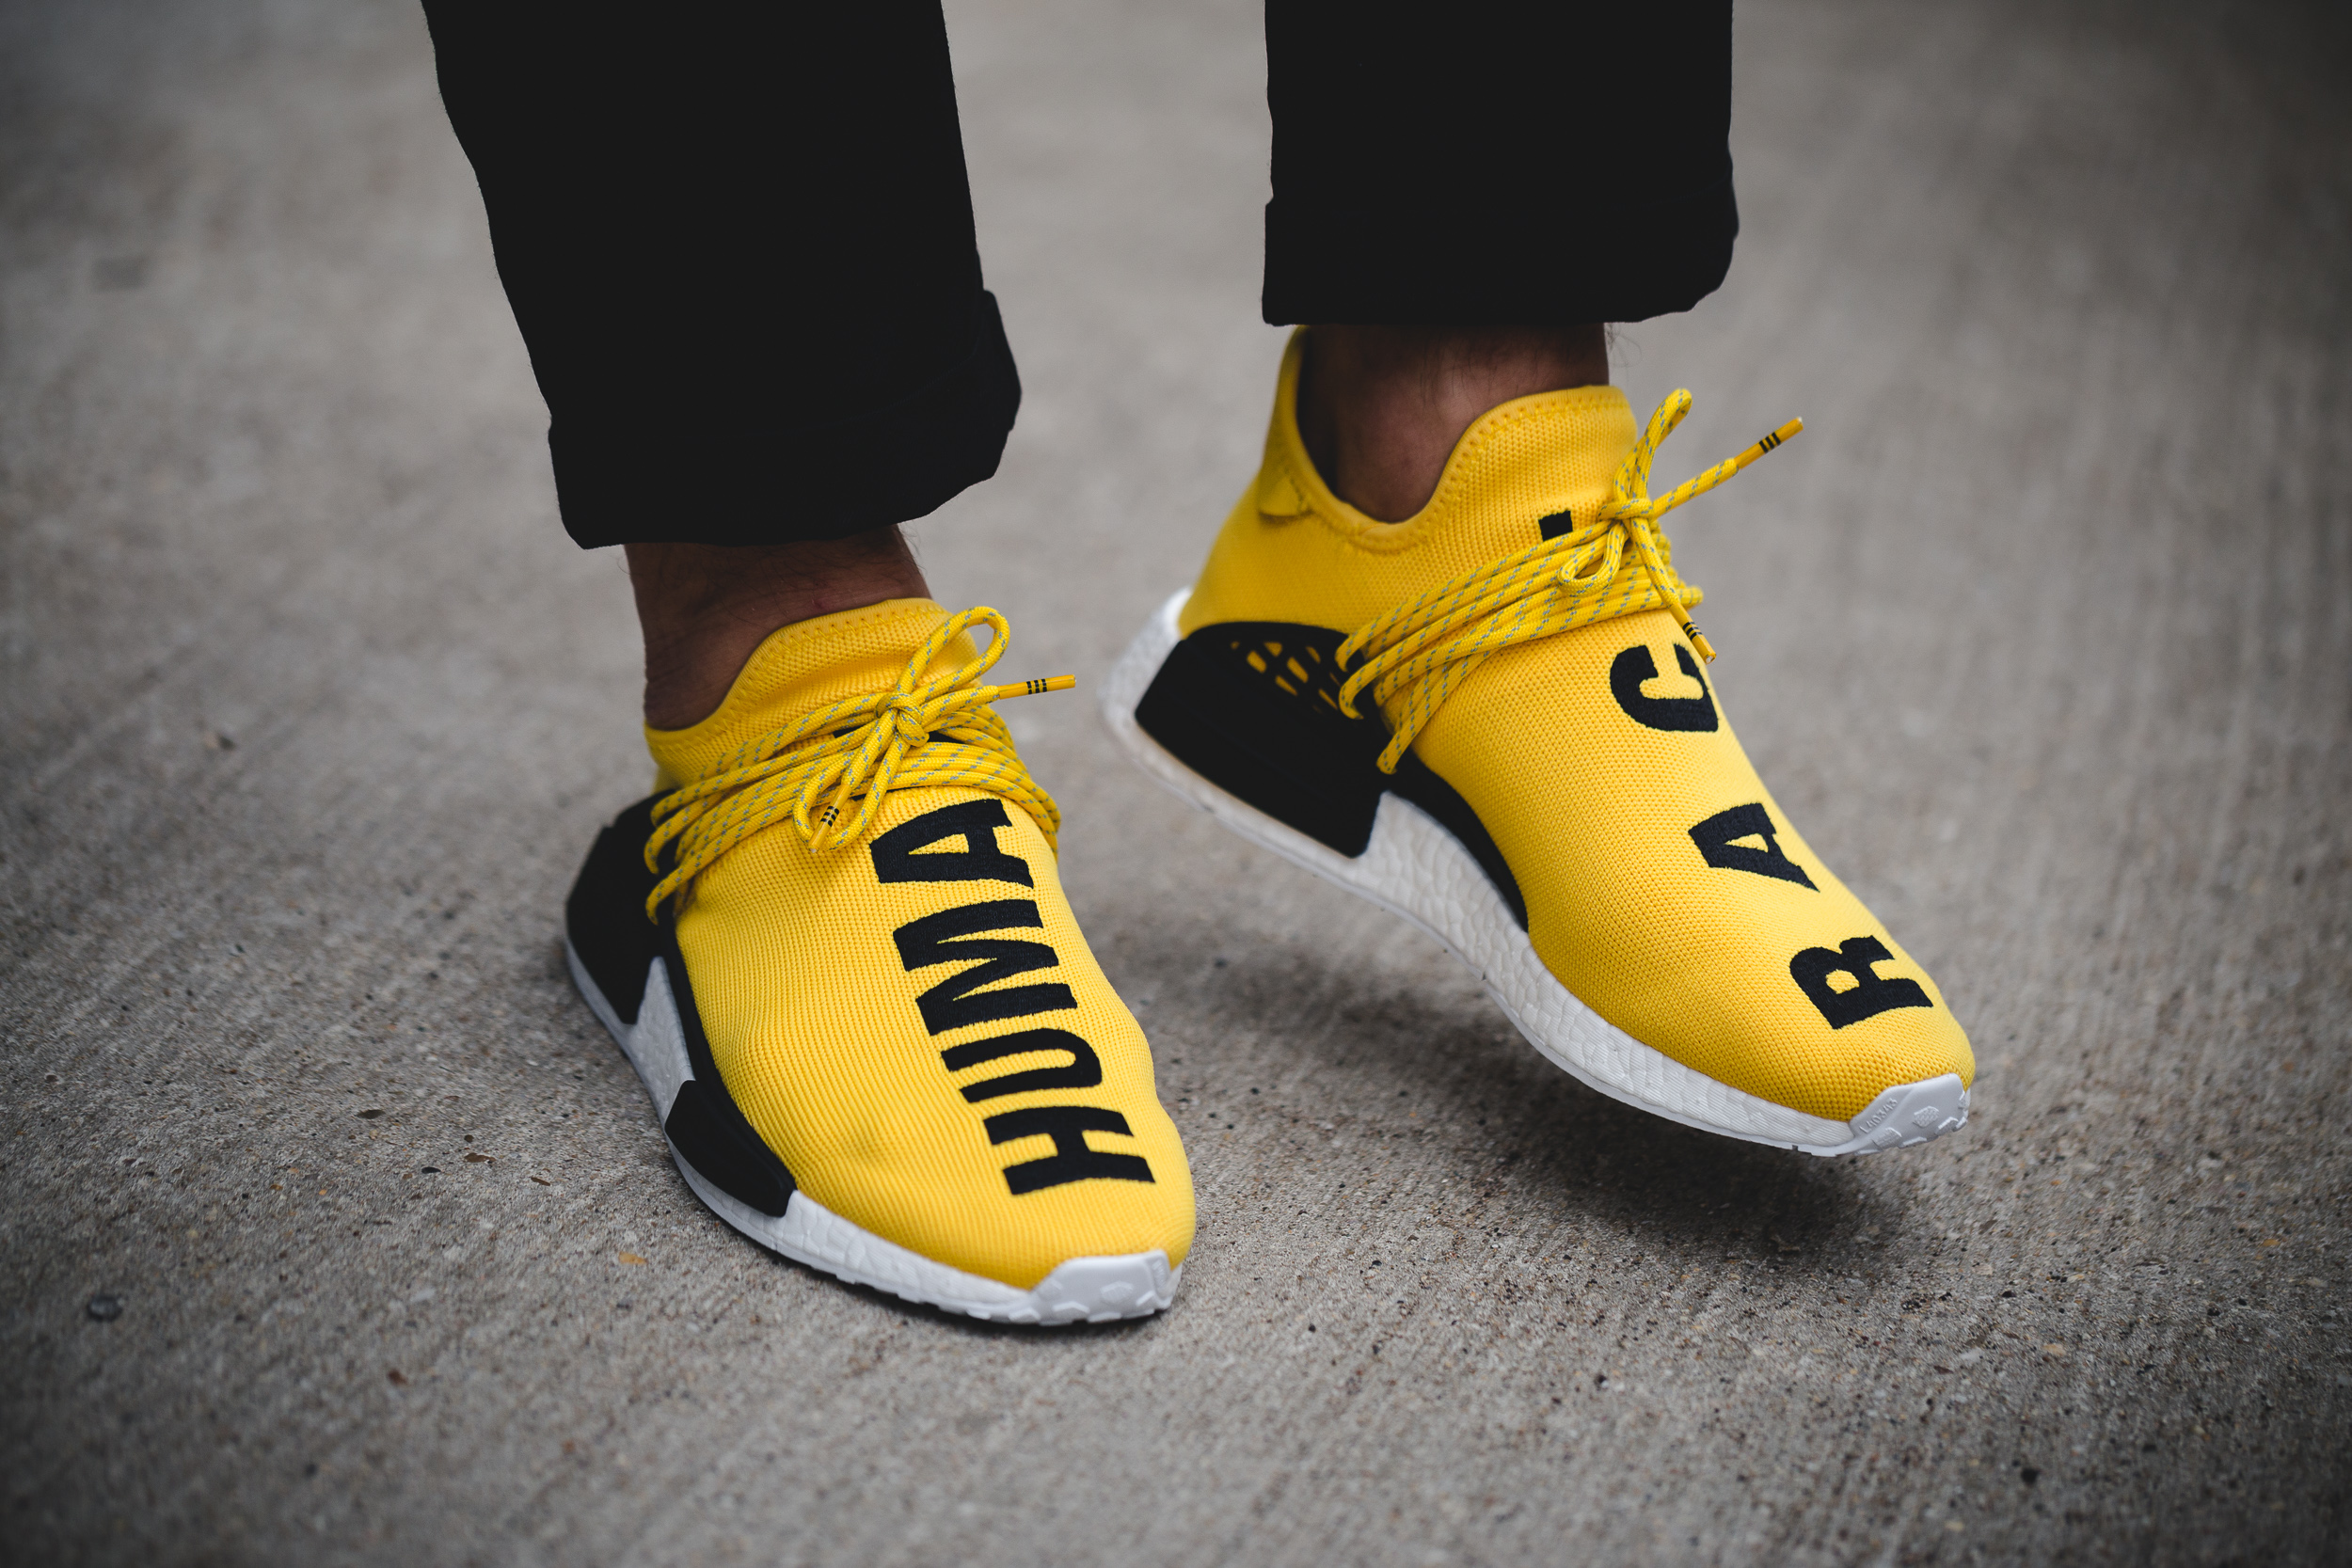 Adidas By Pharrell Williams Adidas x Pharrell Williams 'Hu